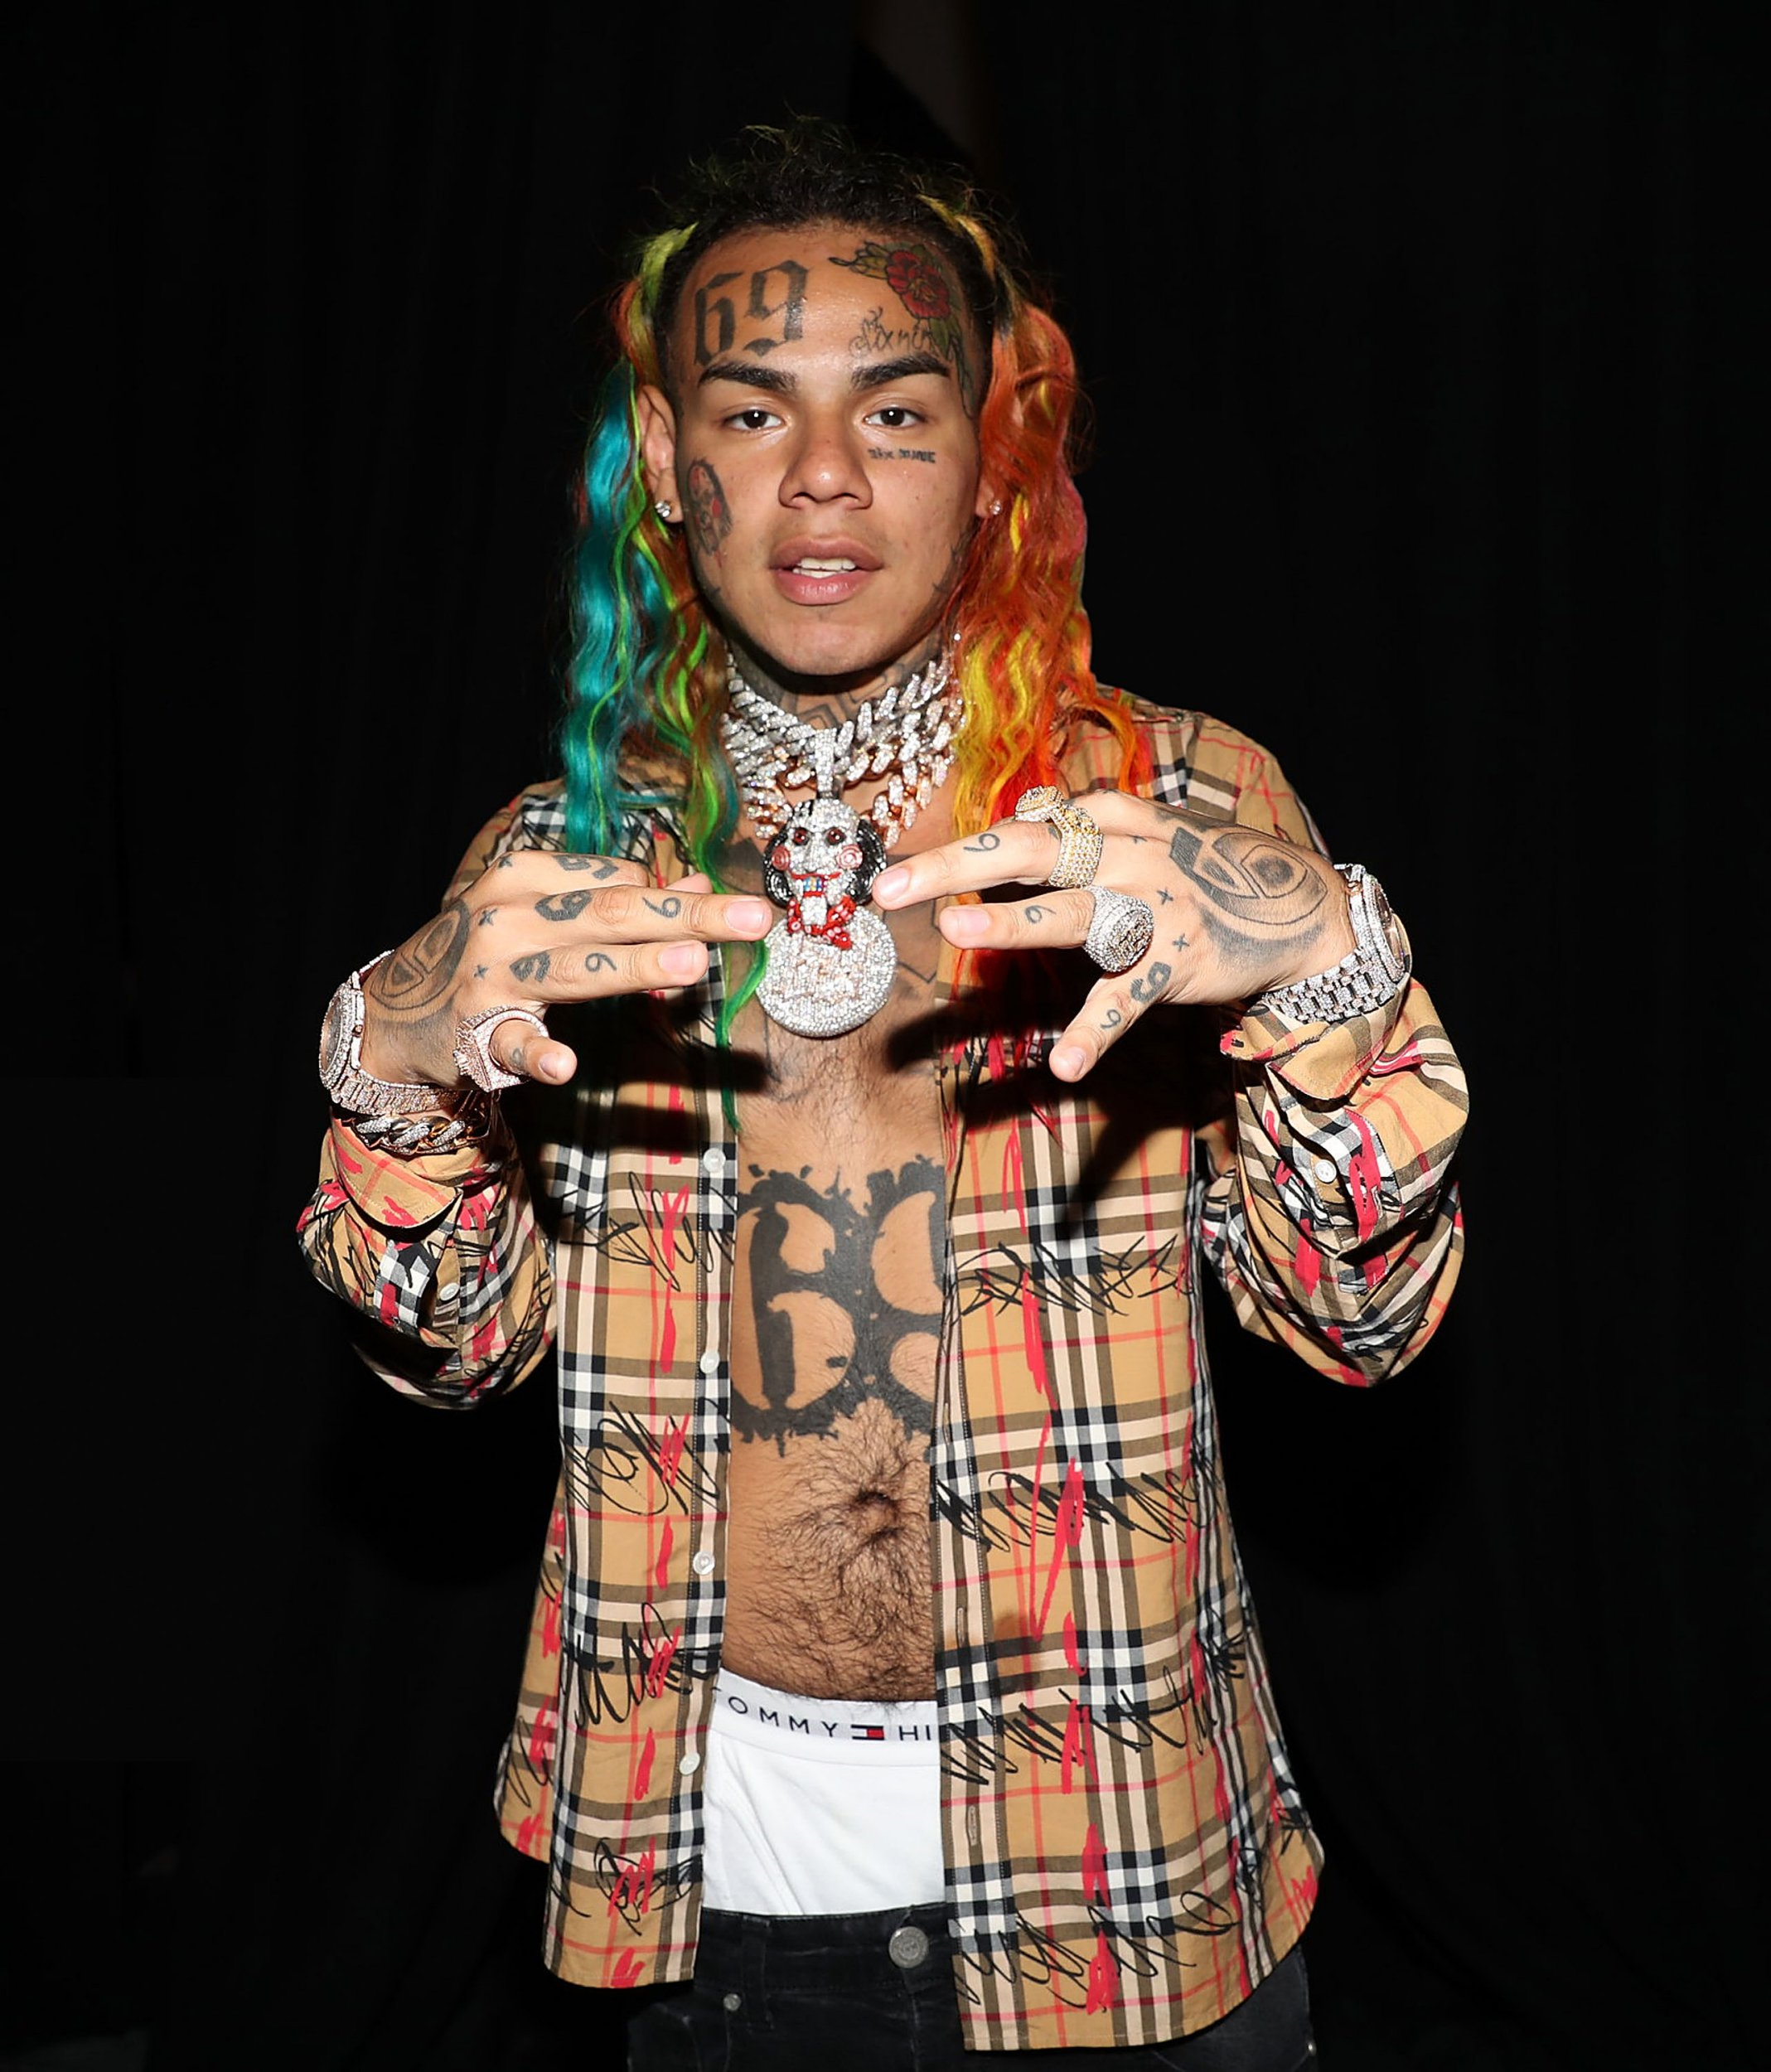 PHILADELPHIA, PA - SEPTEMBER 01: Tekashi 6ix9ine attends Made In America - Day 2 on September 1, 2018 in Philadelphia, Pennsylvania. (Photo by Shareif Ziyadat/WireImage)